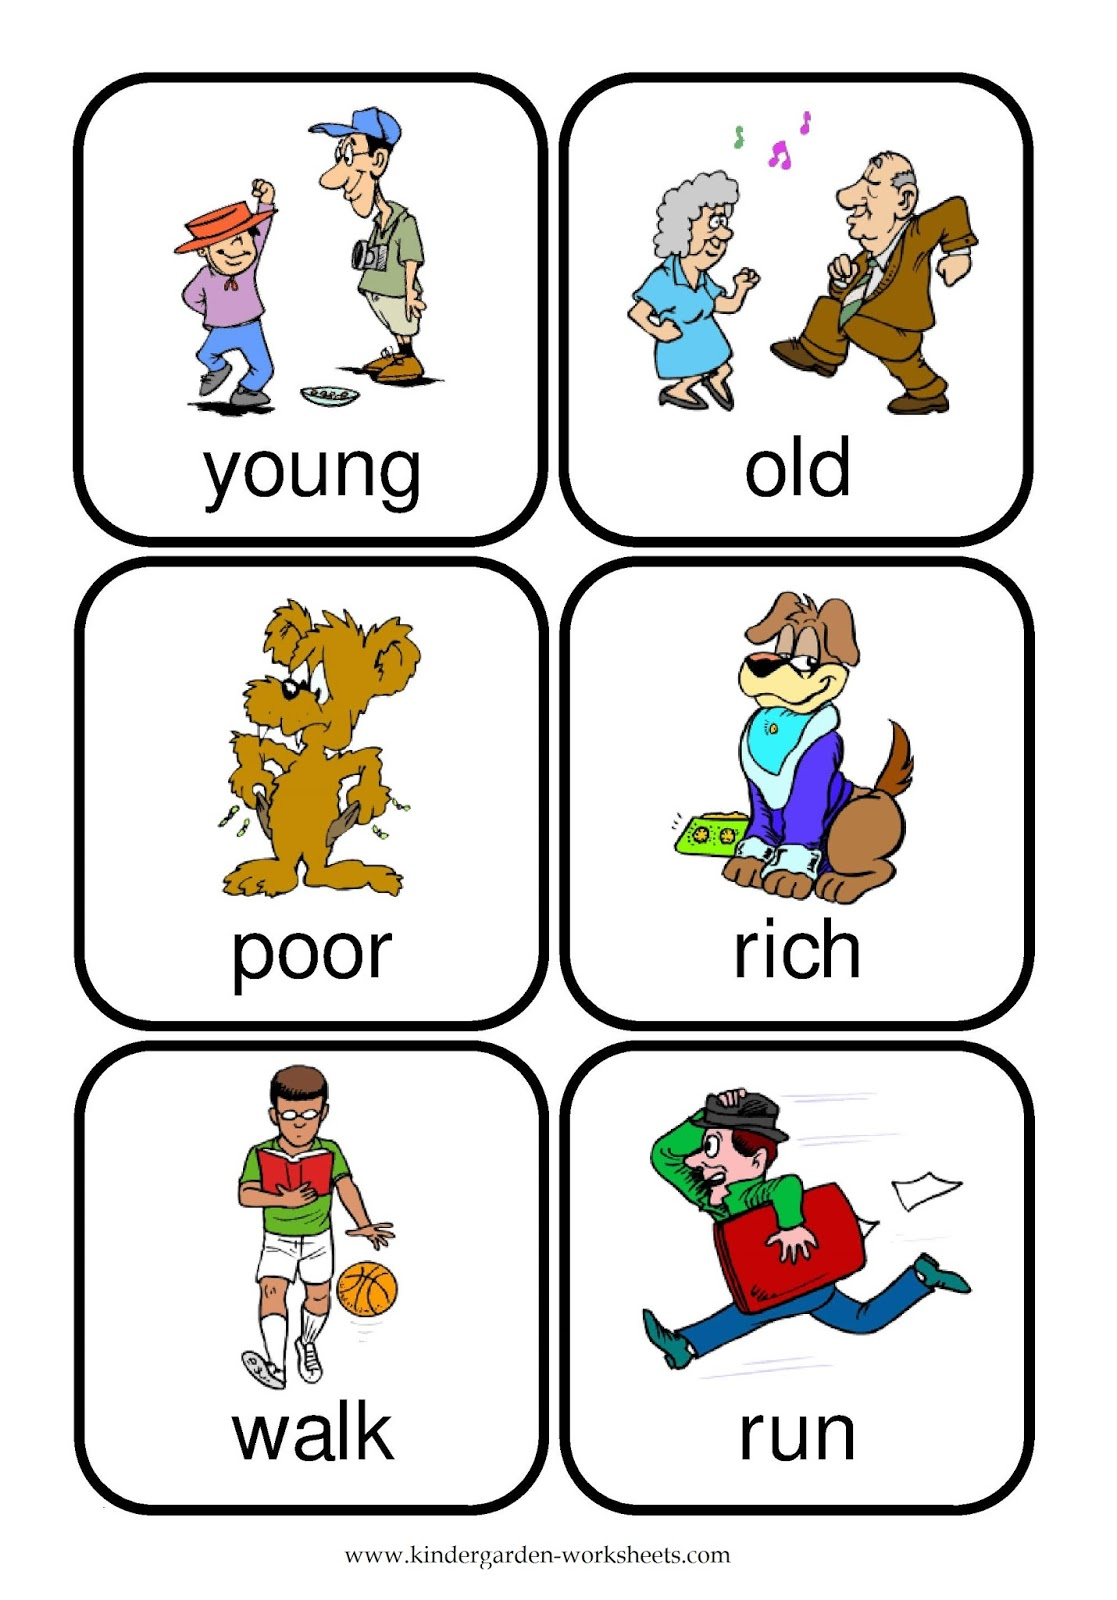 Kindergarten Worksheets Flashcards Opposite Words – Kindergarten Opposites Worksheet